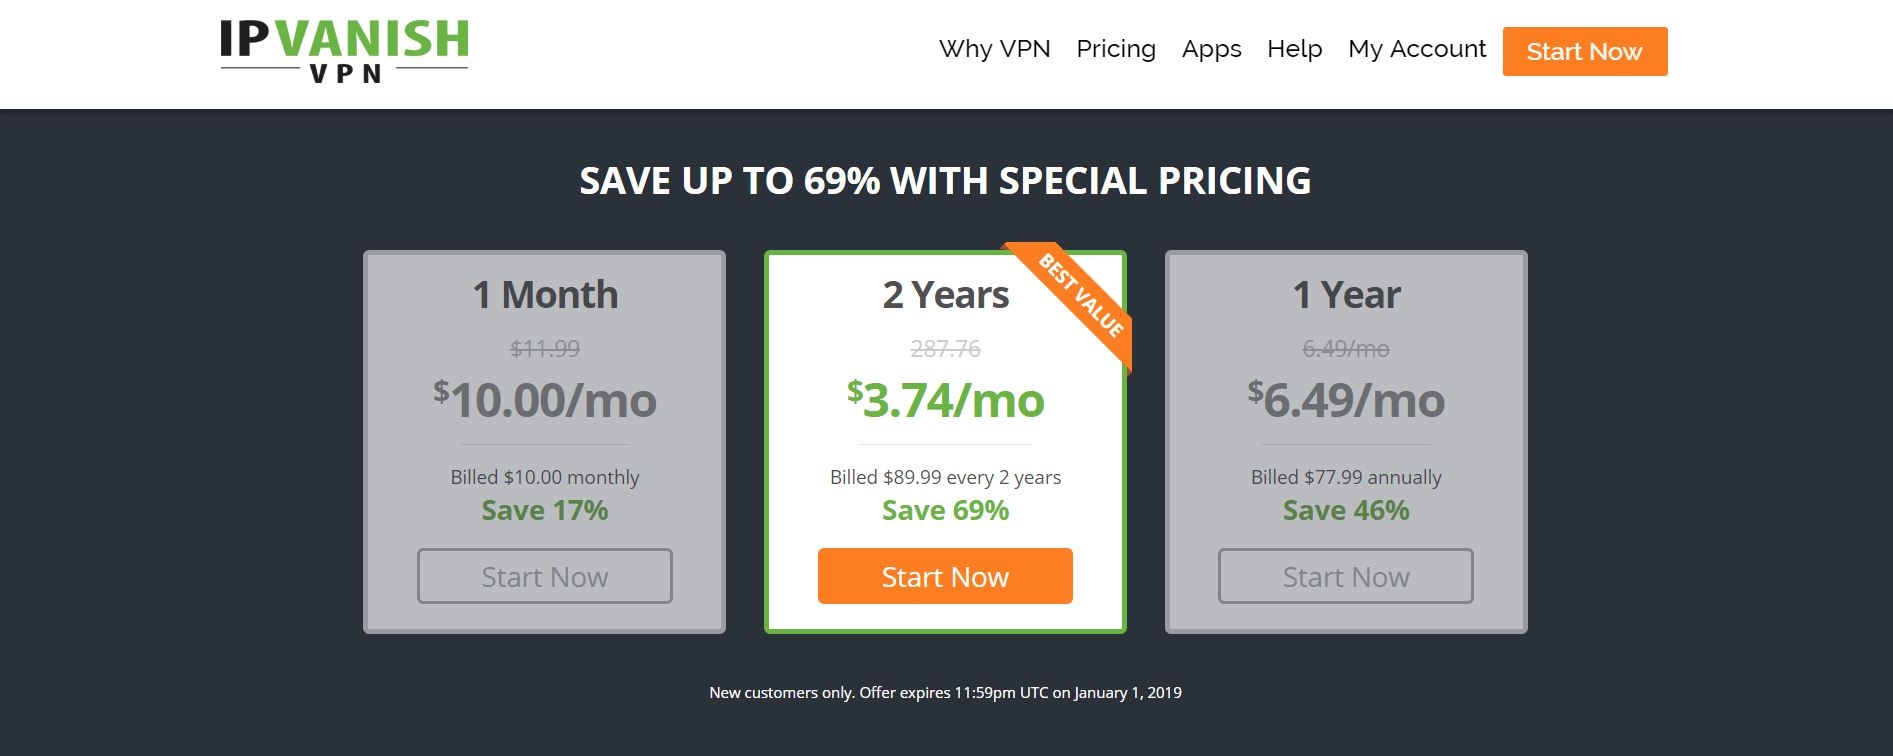 ipvanish vpn pricing